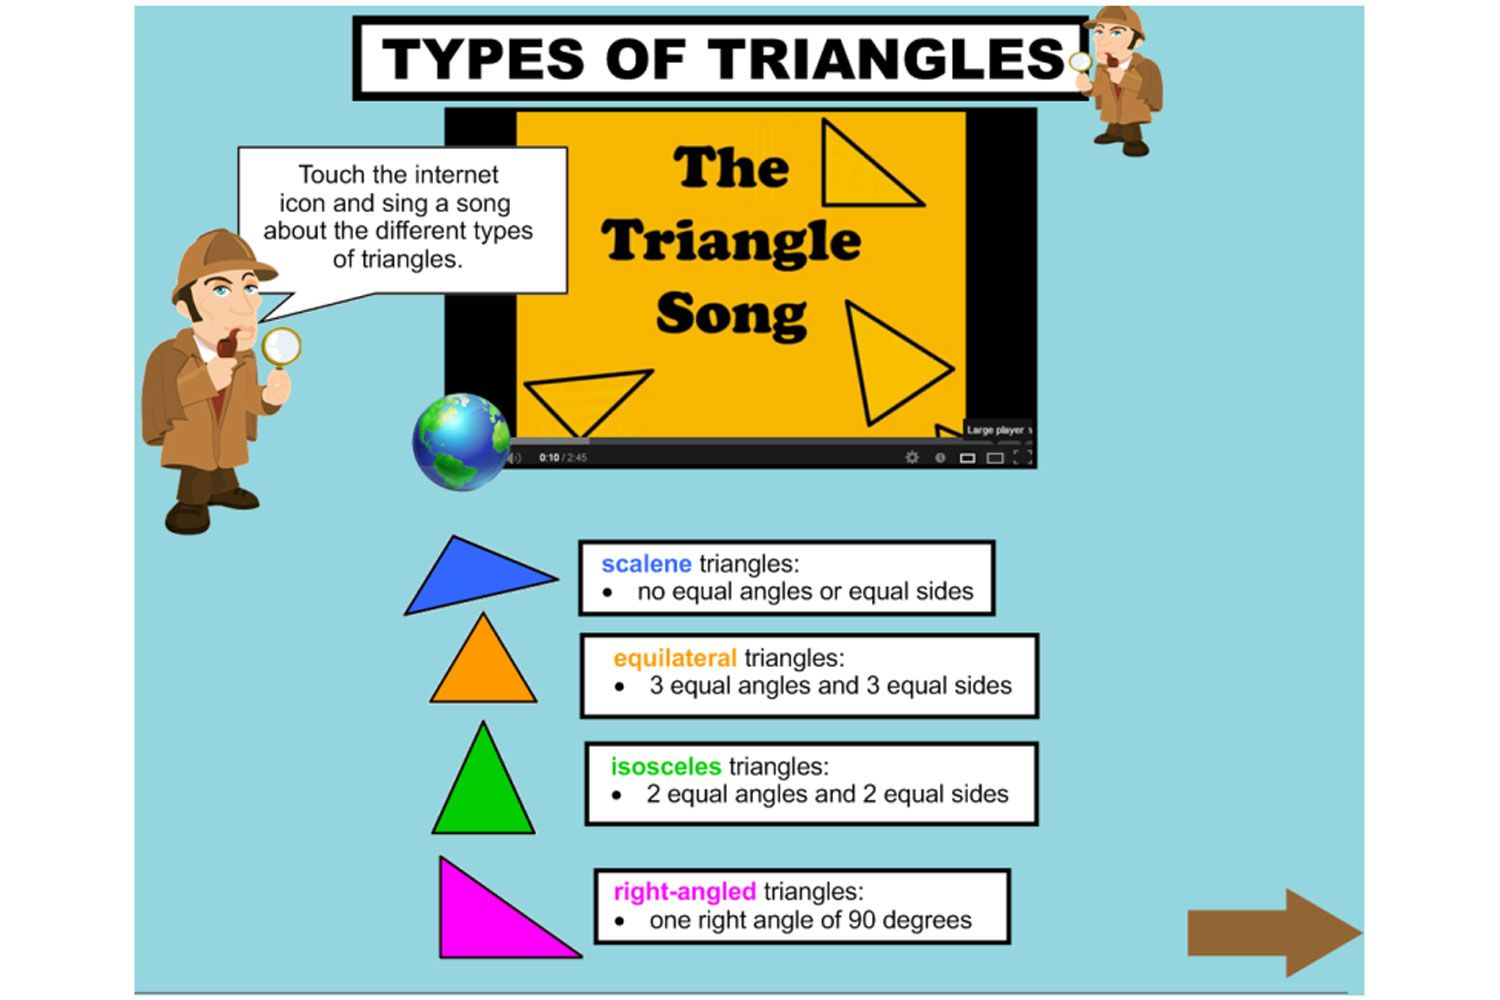 Classify The Different Types Of Triangles According To